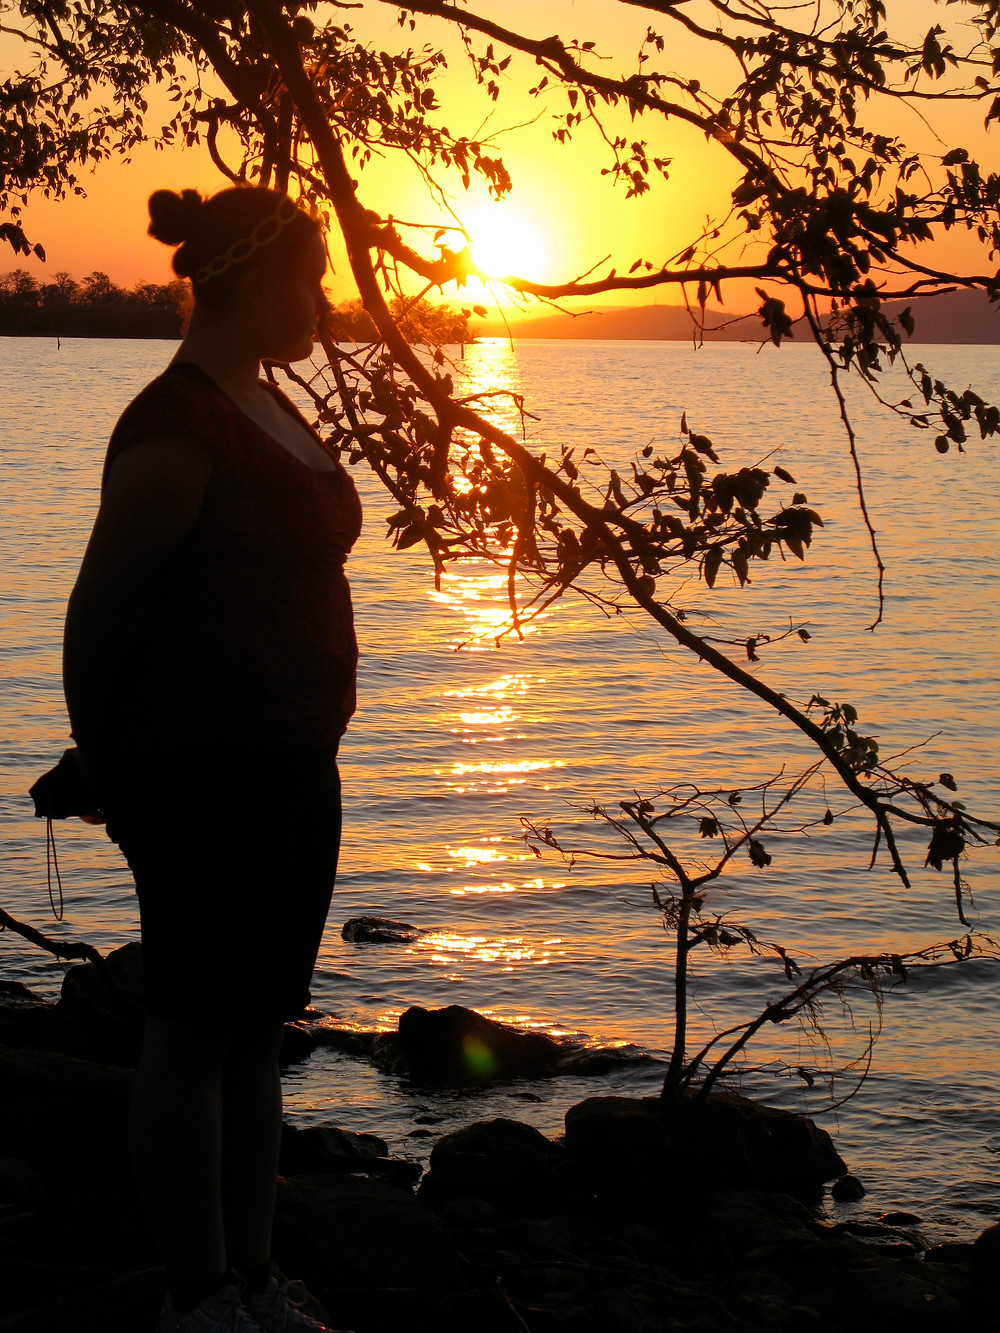 A woman's silhouette in front of a sunset